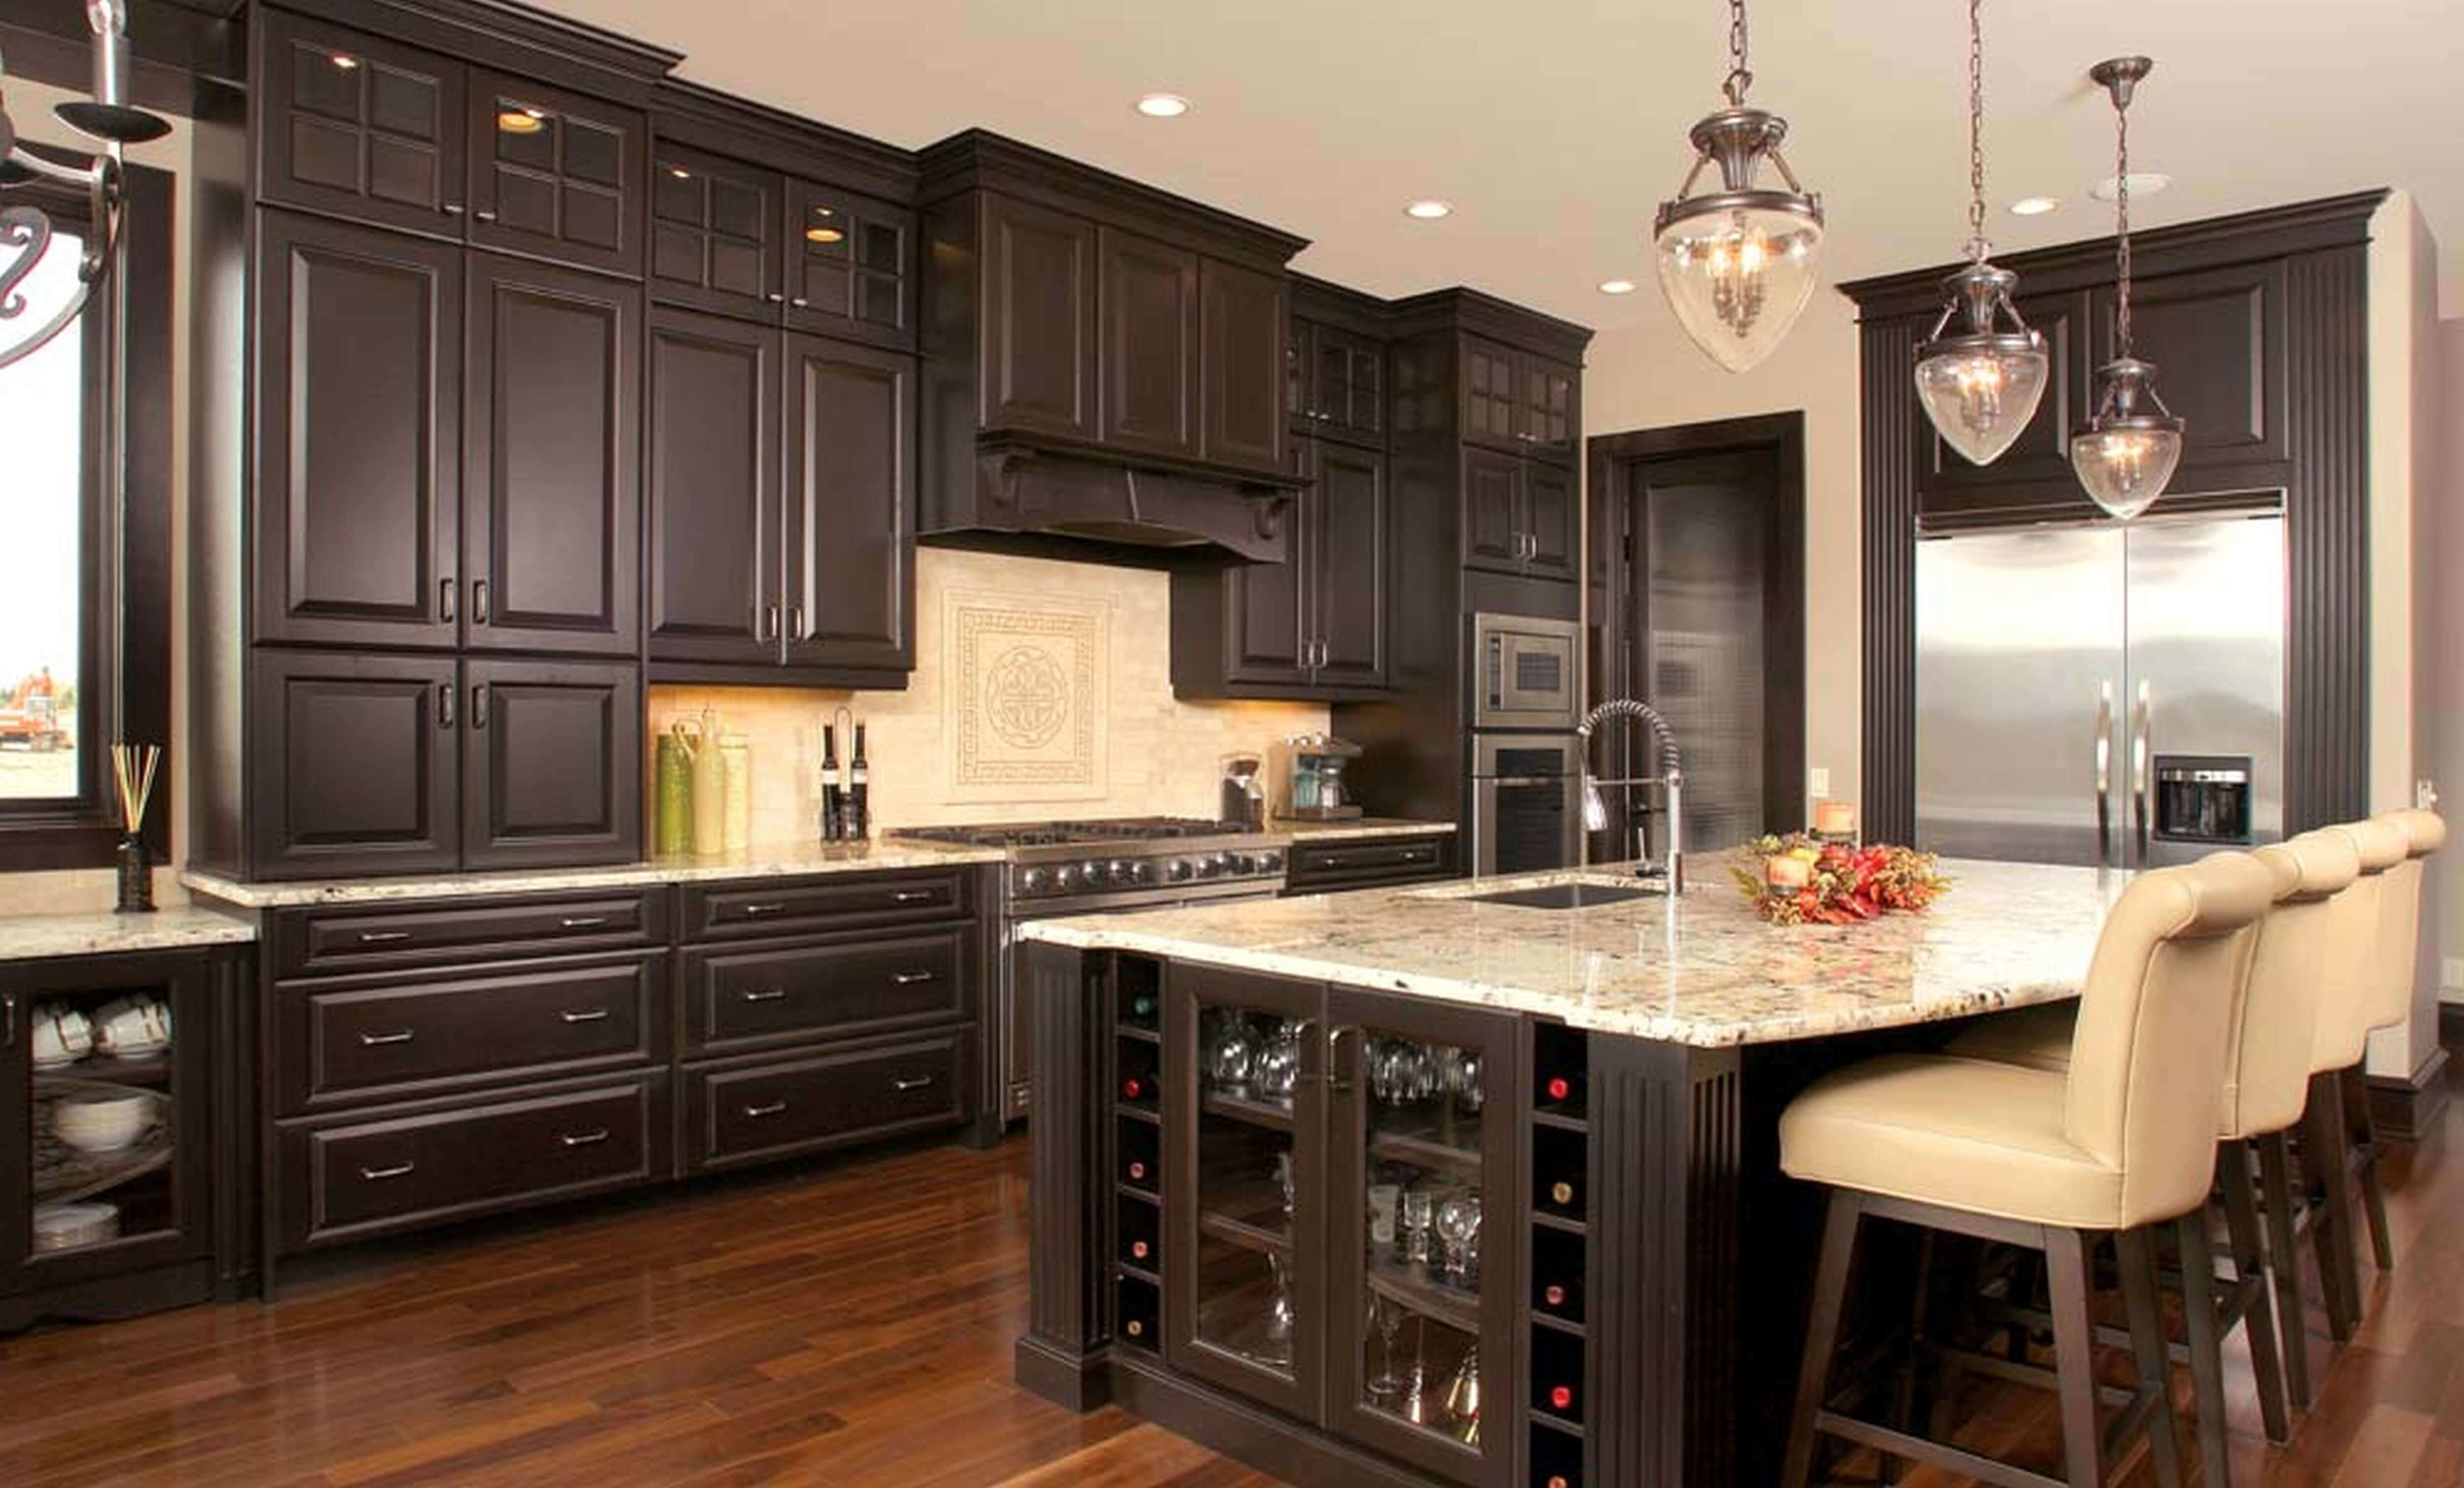 Dark oak cabinetry paired with luxury kitchen cabinet hardware builds an aesthetic fundamental for this room. Materials such as stainless steel, cream tile backsplashes and bright granite countertop further accent the elegance of the space